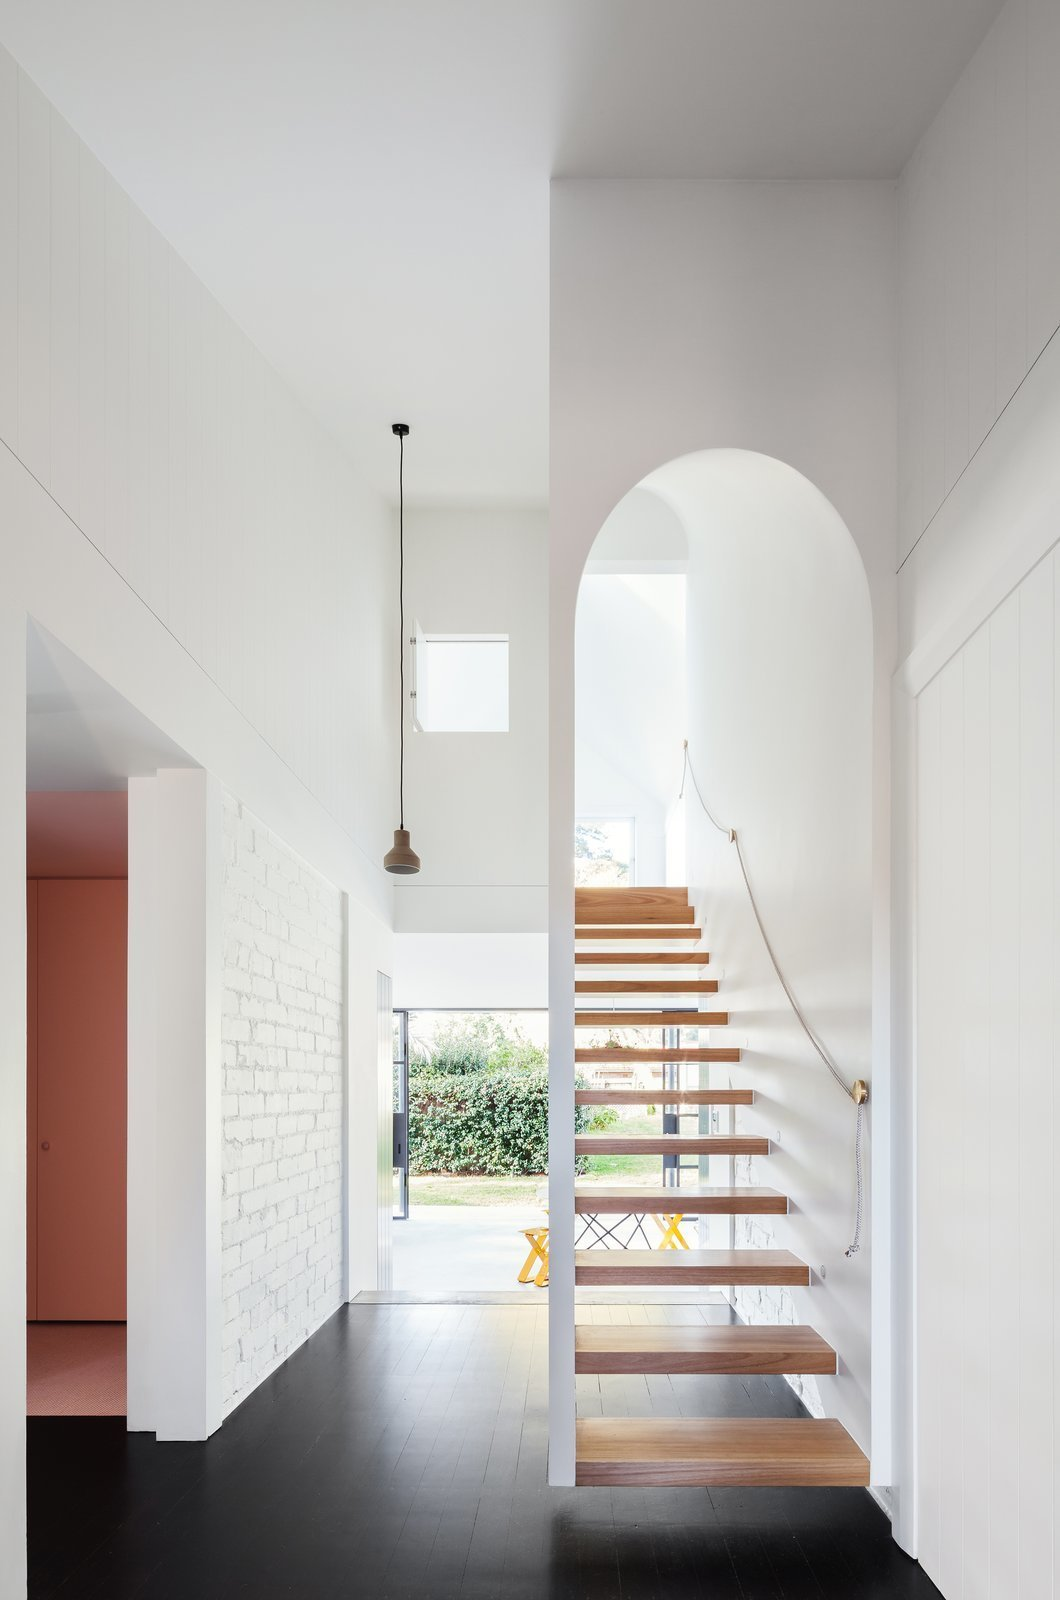 Staircase, Wood Tread, and Cable Railing This renovated arts and craft family home in Sydney's leafy North Shore has an arched main entrance at the front of the house, and a narrow floating staircase with a threshold that mimics the arch on the façade.  Photos from Discover 10 Impressive Spaces With Arched Windows and Doors